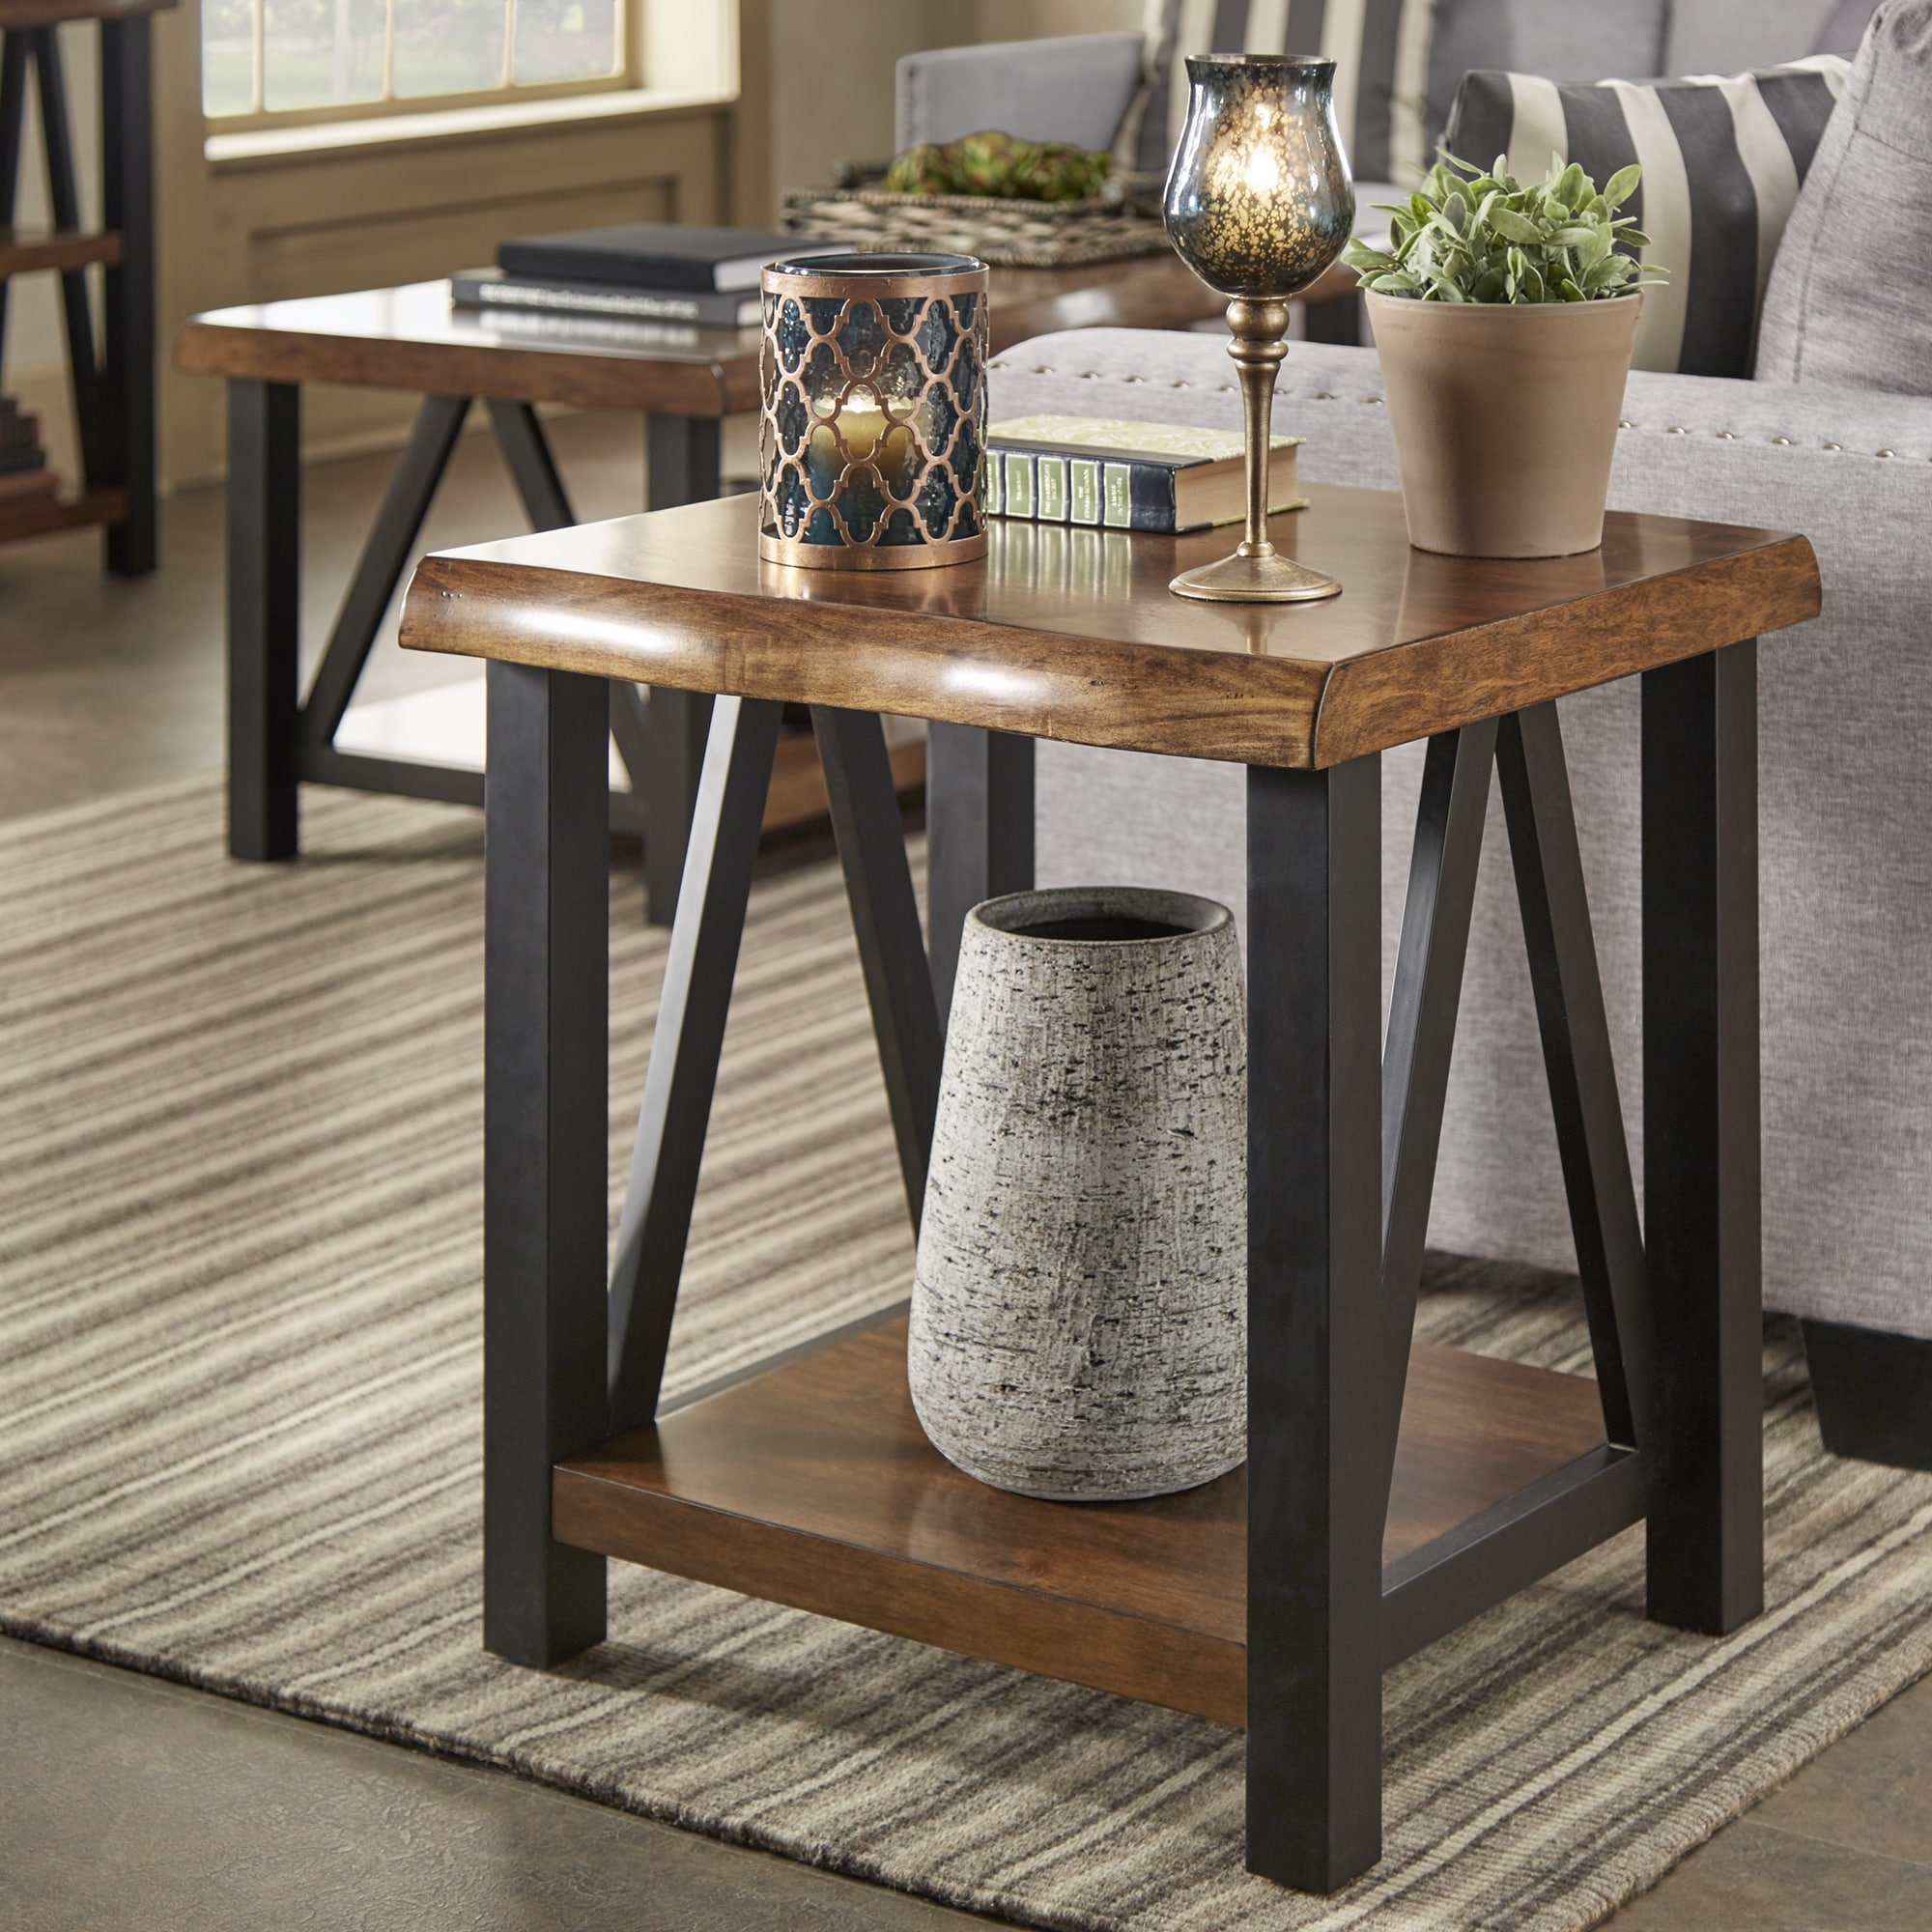 banyan live edge wood and metal accent tables inspire artisan table grey end distressed white sofa vintage brass side pier imports retro kitchen bedroom furniture night stands